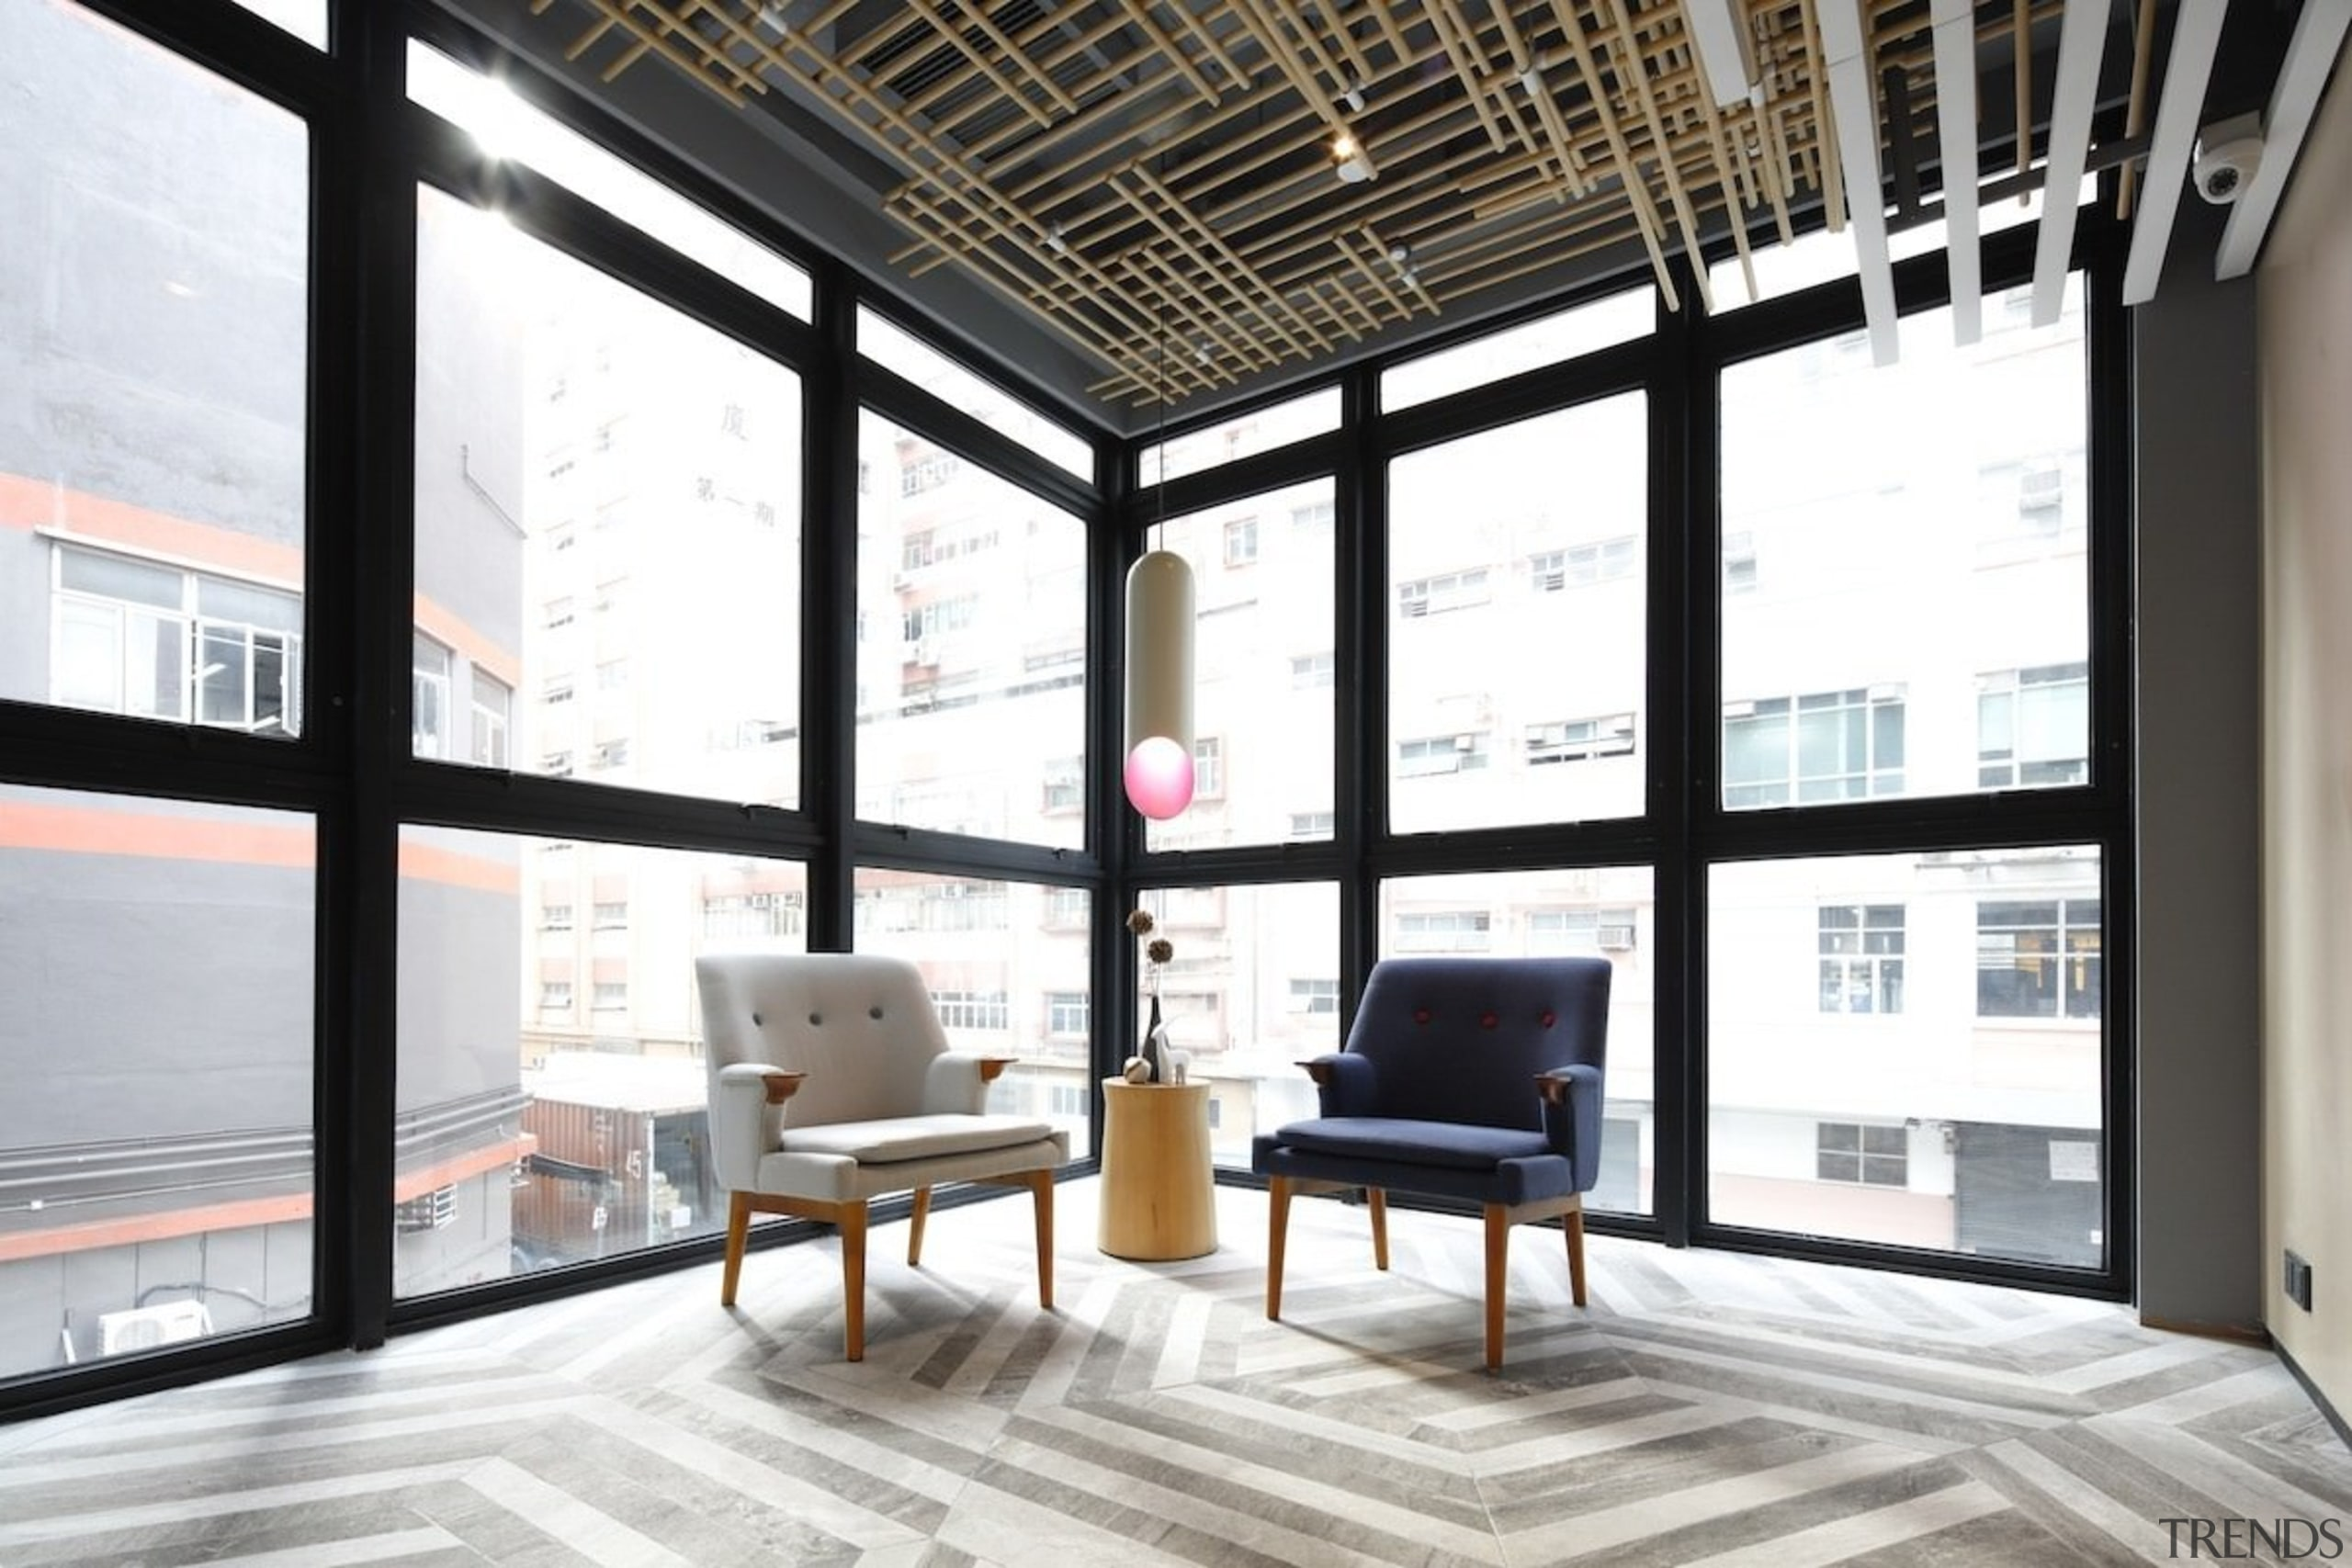 Hotel Ease Access - Hotel Ease Access - ceiling, interior design, loft, window, white